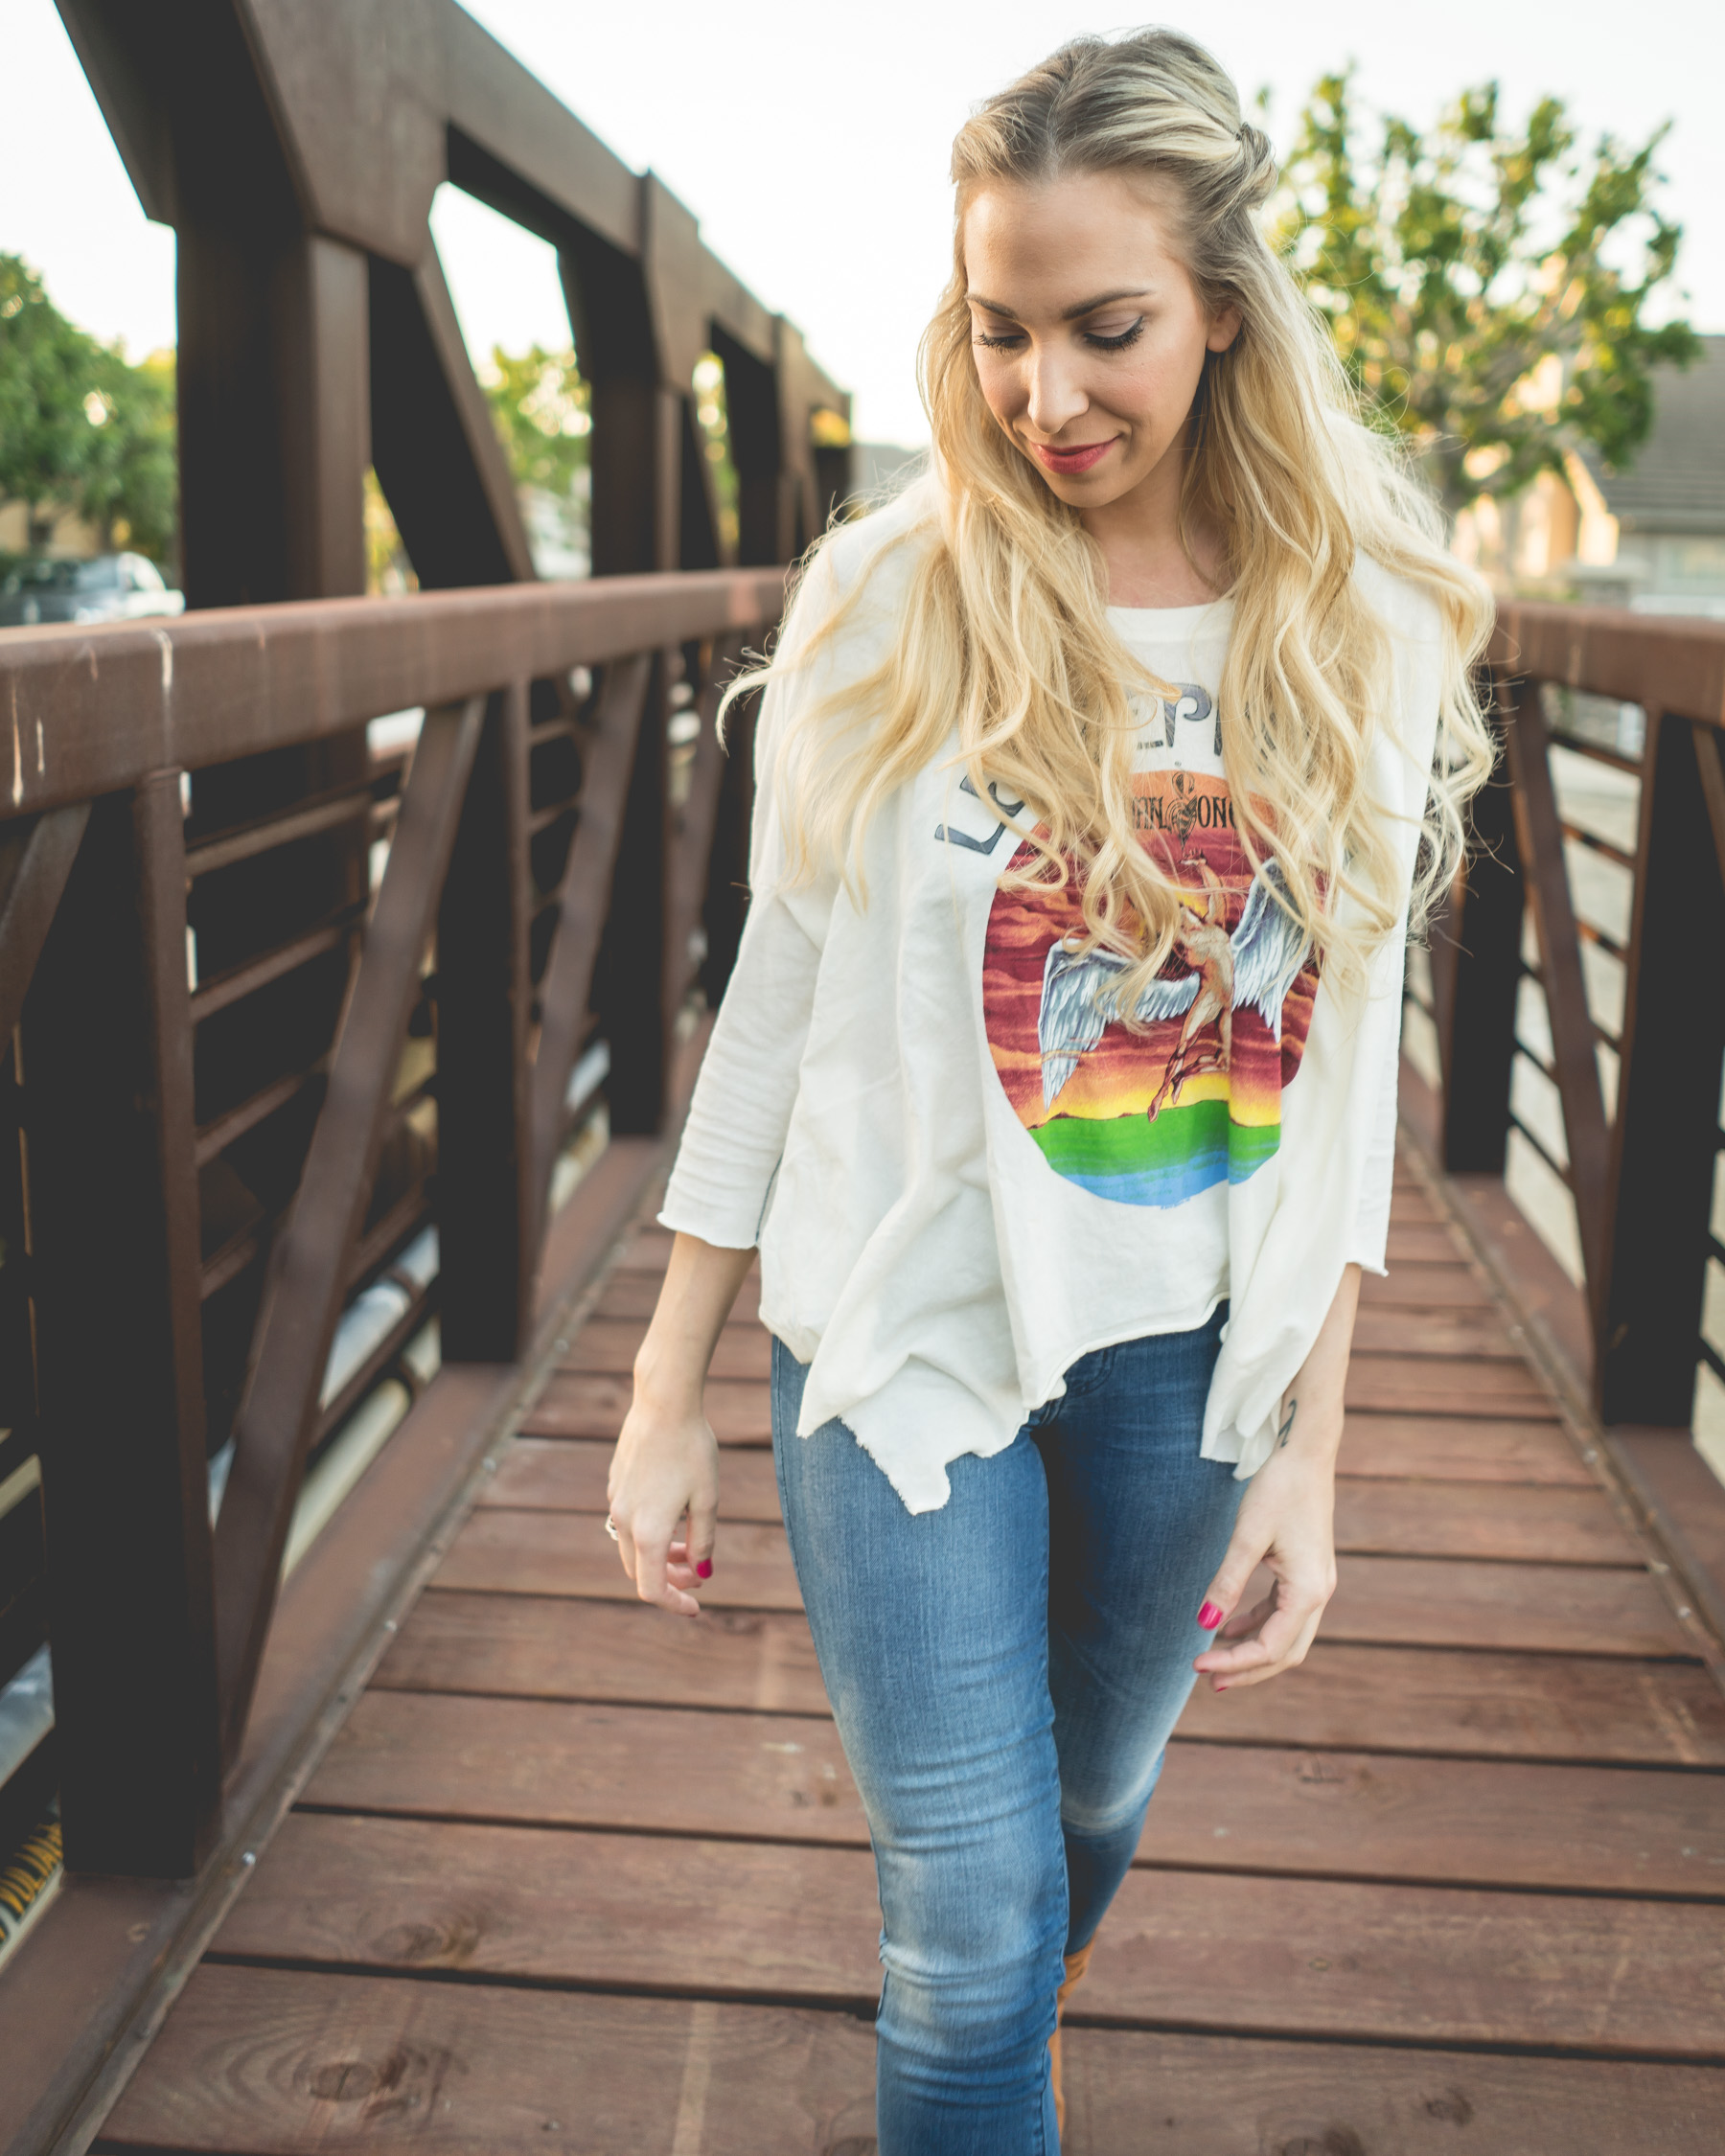 brandi-matthews-rock-rouge-hippie-shirt-4